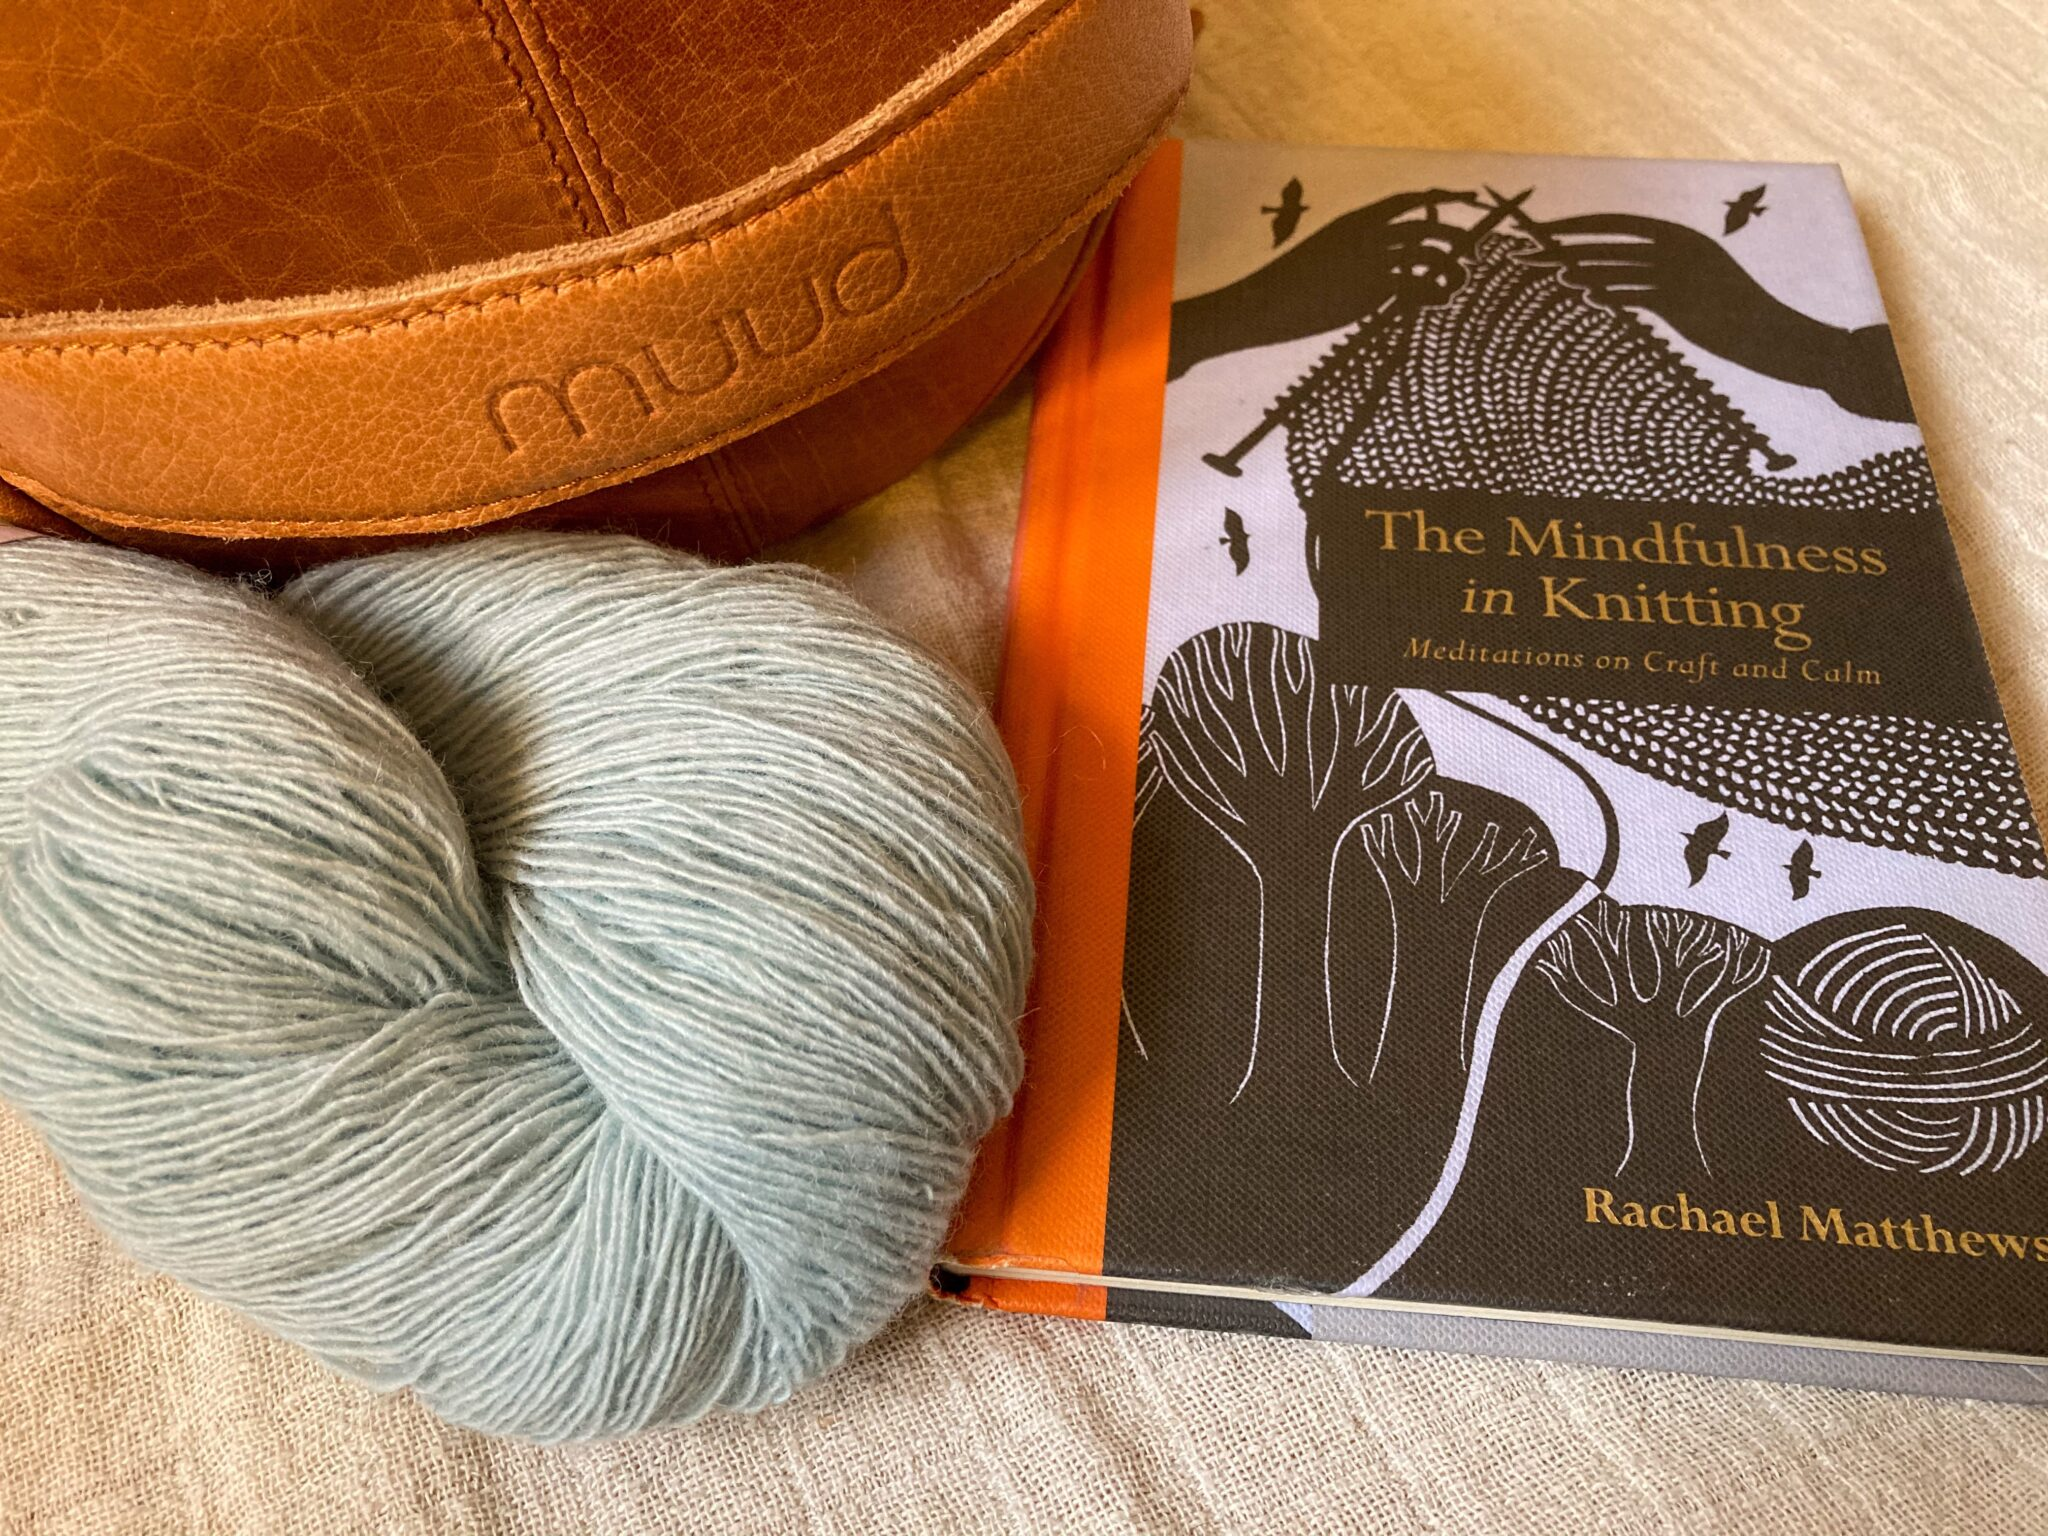 The Mindfulness in Knitting book and Muud Saturn bag along with yarn.